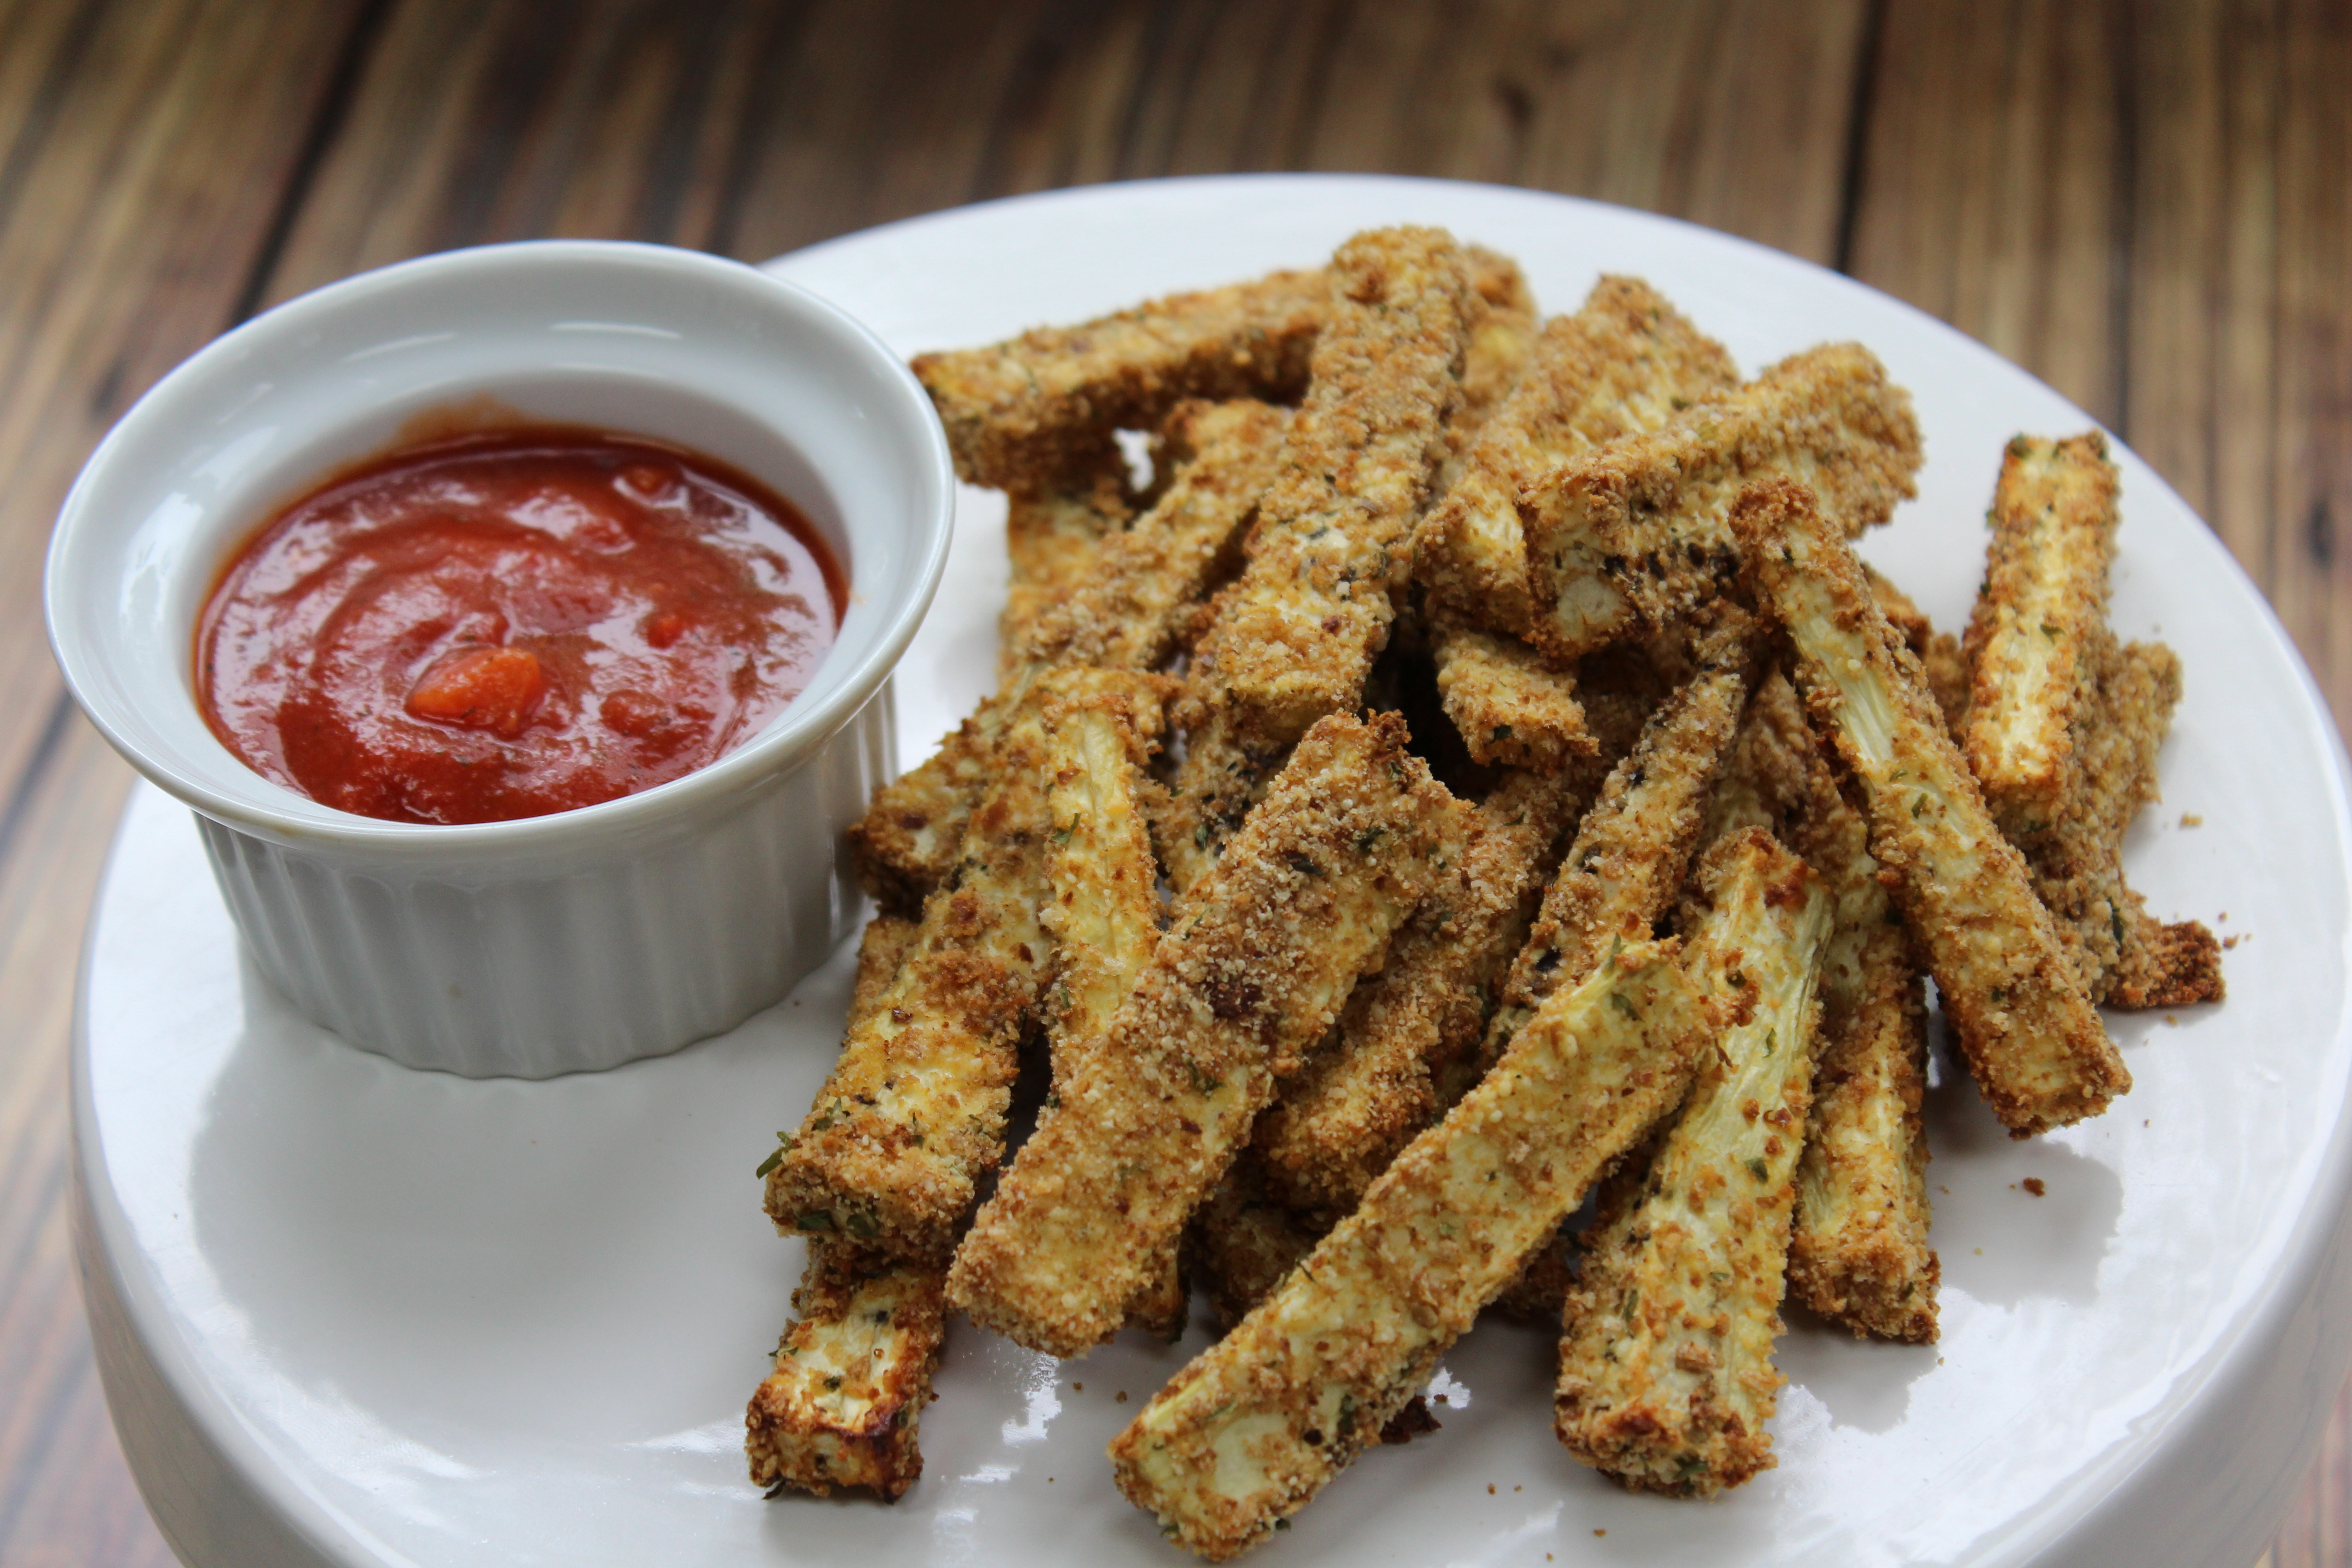 Eggplant fries | Baked eggplant fries recipe | Summer side dish ideas | Sink organization tutorial #ScrubDishCloth #CollectiveBias #ad GinaKirk.com